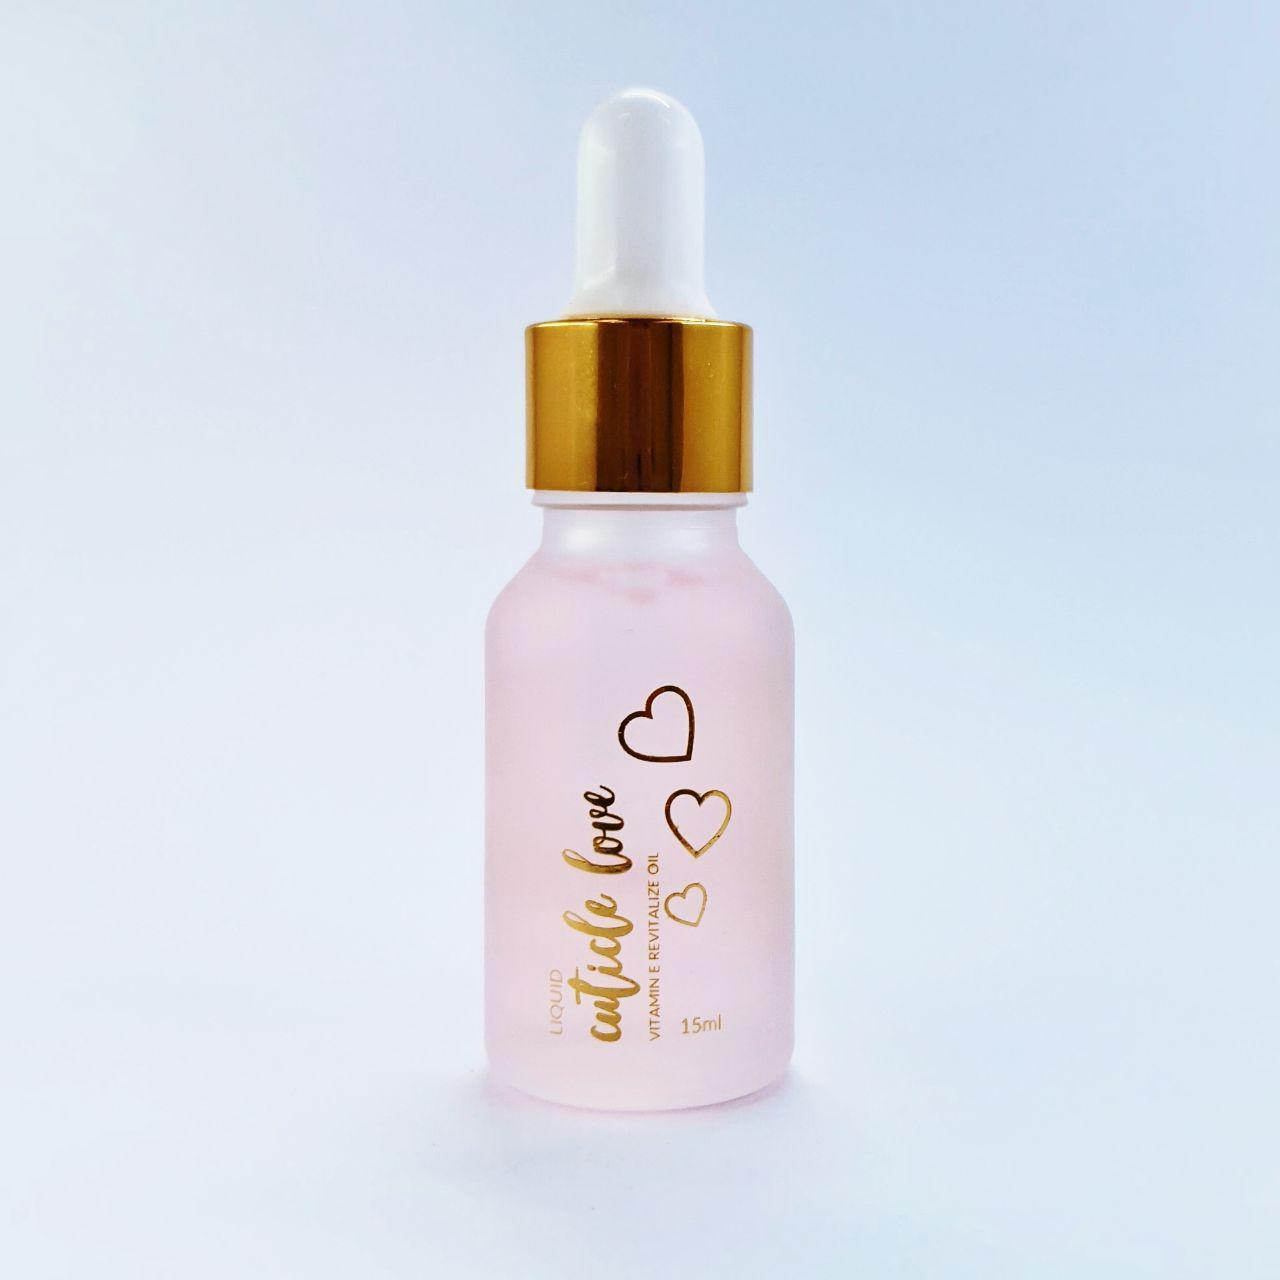 Planet Nails Cuticle Oil - 15ml